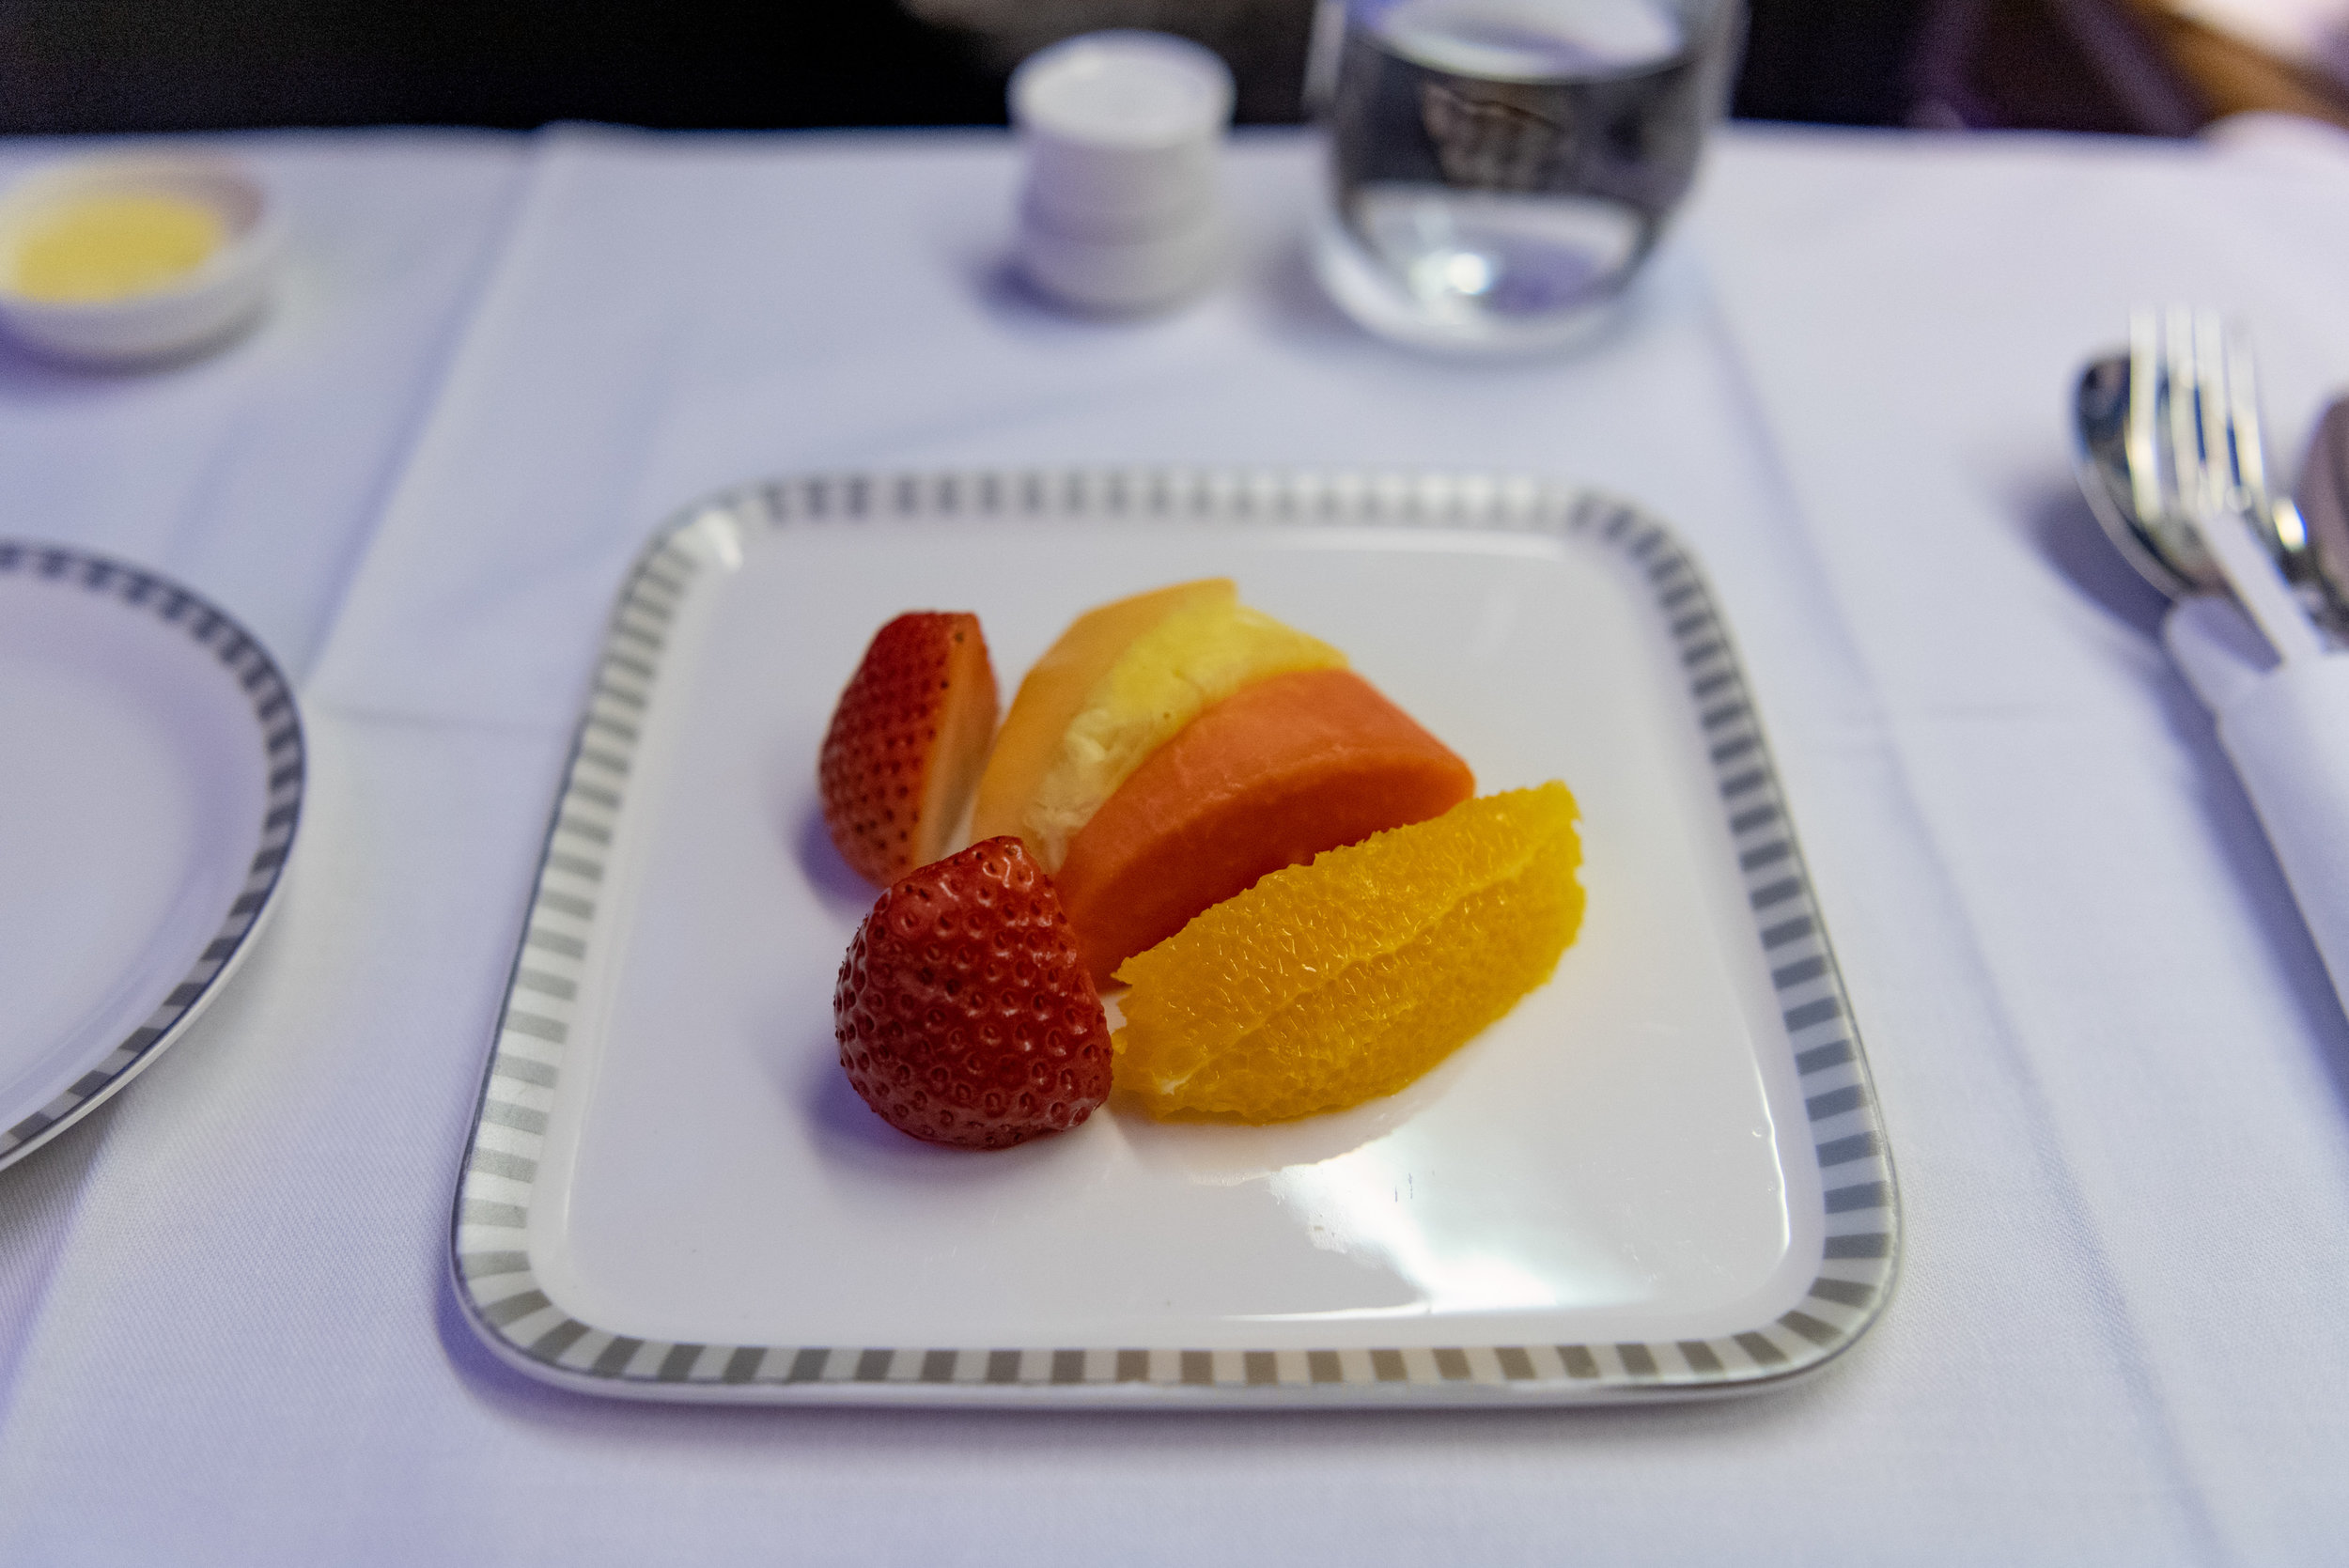 Fruits  Singapore Airlines Business Class SQ828 777-300ER - SIN to PVG